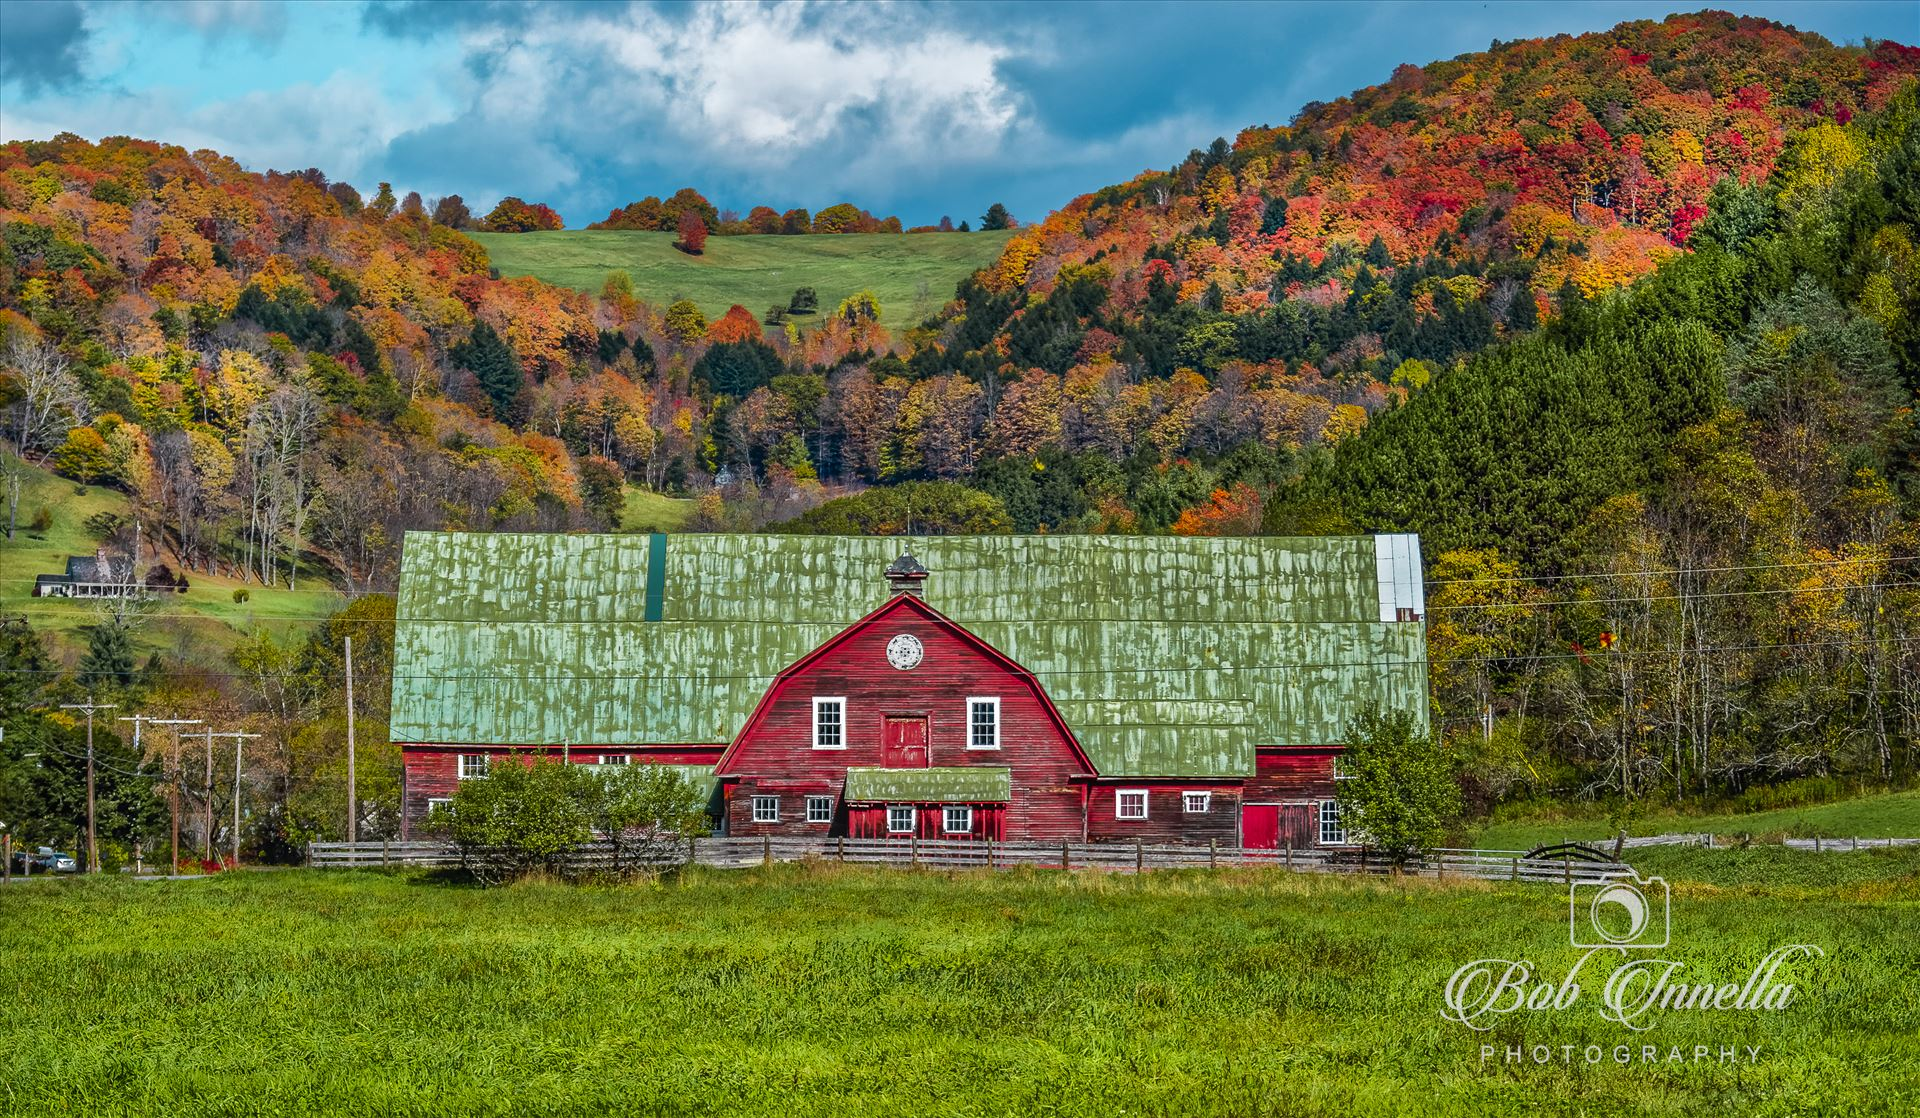 Vermont Green Roof Barn - Vermont Barn with Fall Foliage by Buckmaster